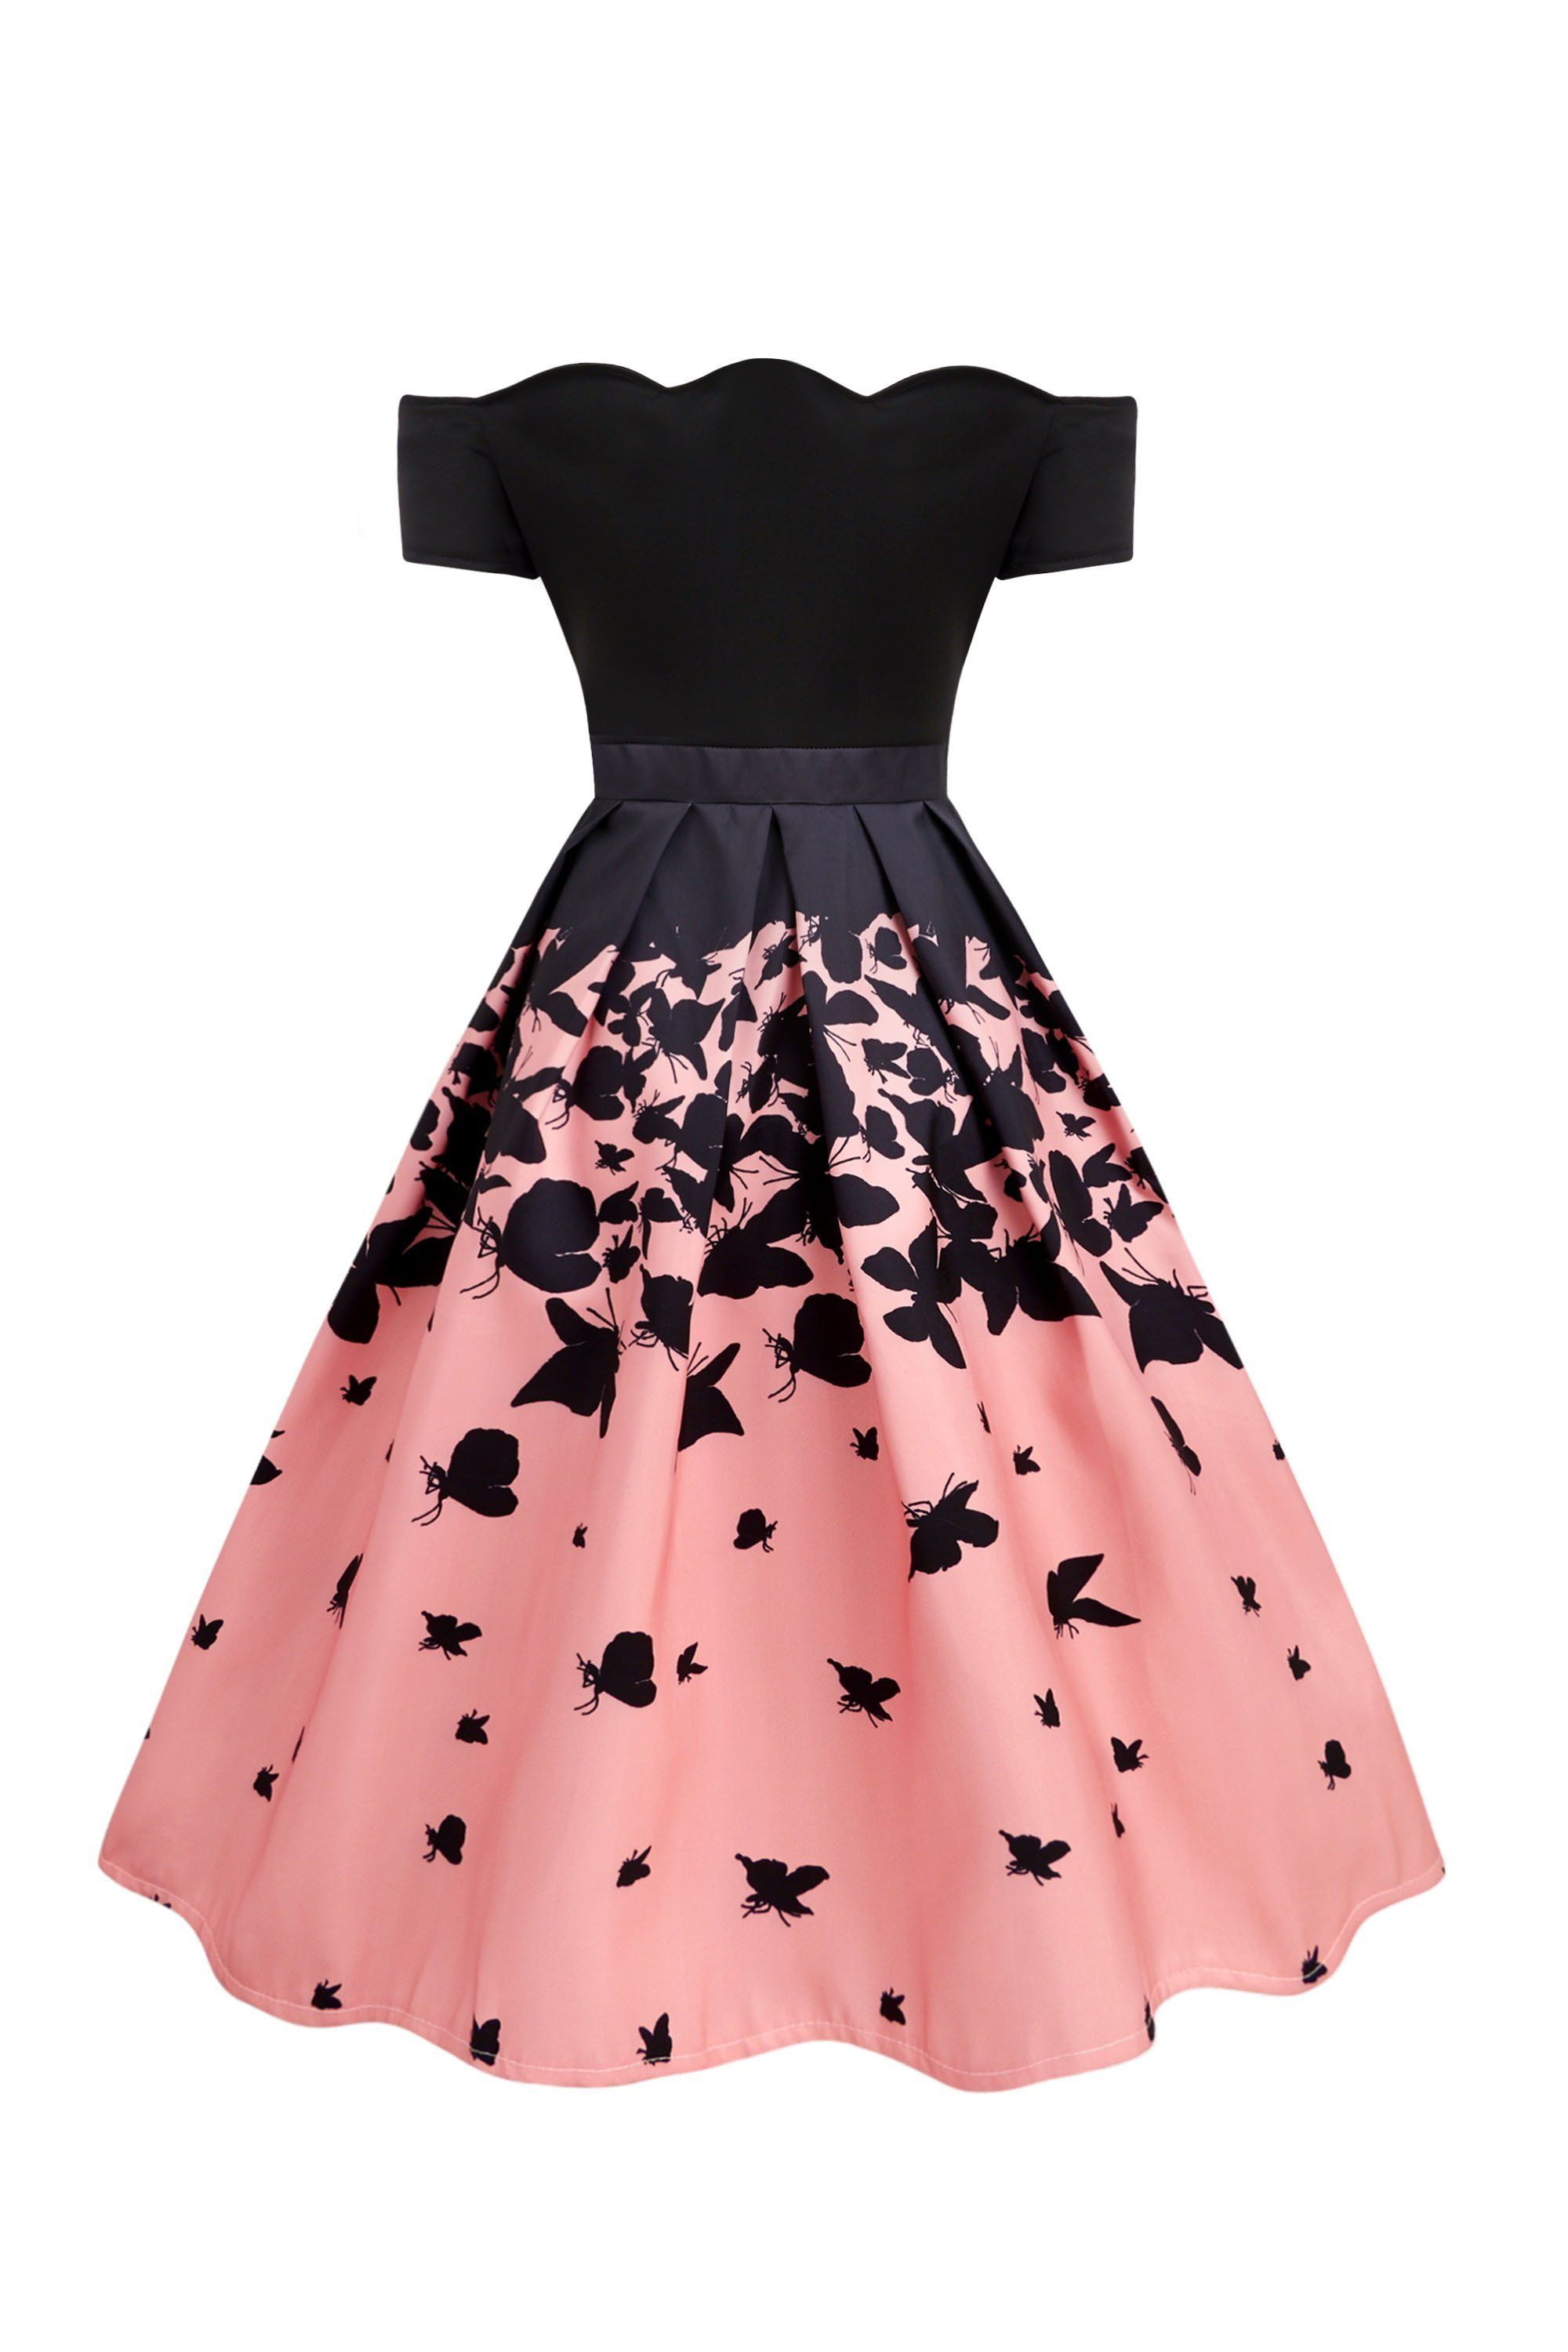 Robe Swing Annee 50 Papillon Retro Stage France Vetements Styles Robe Swing Robe Fashion